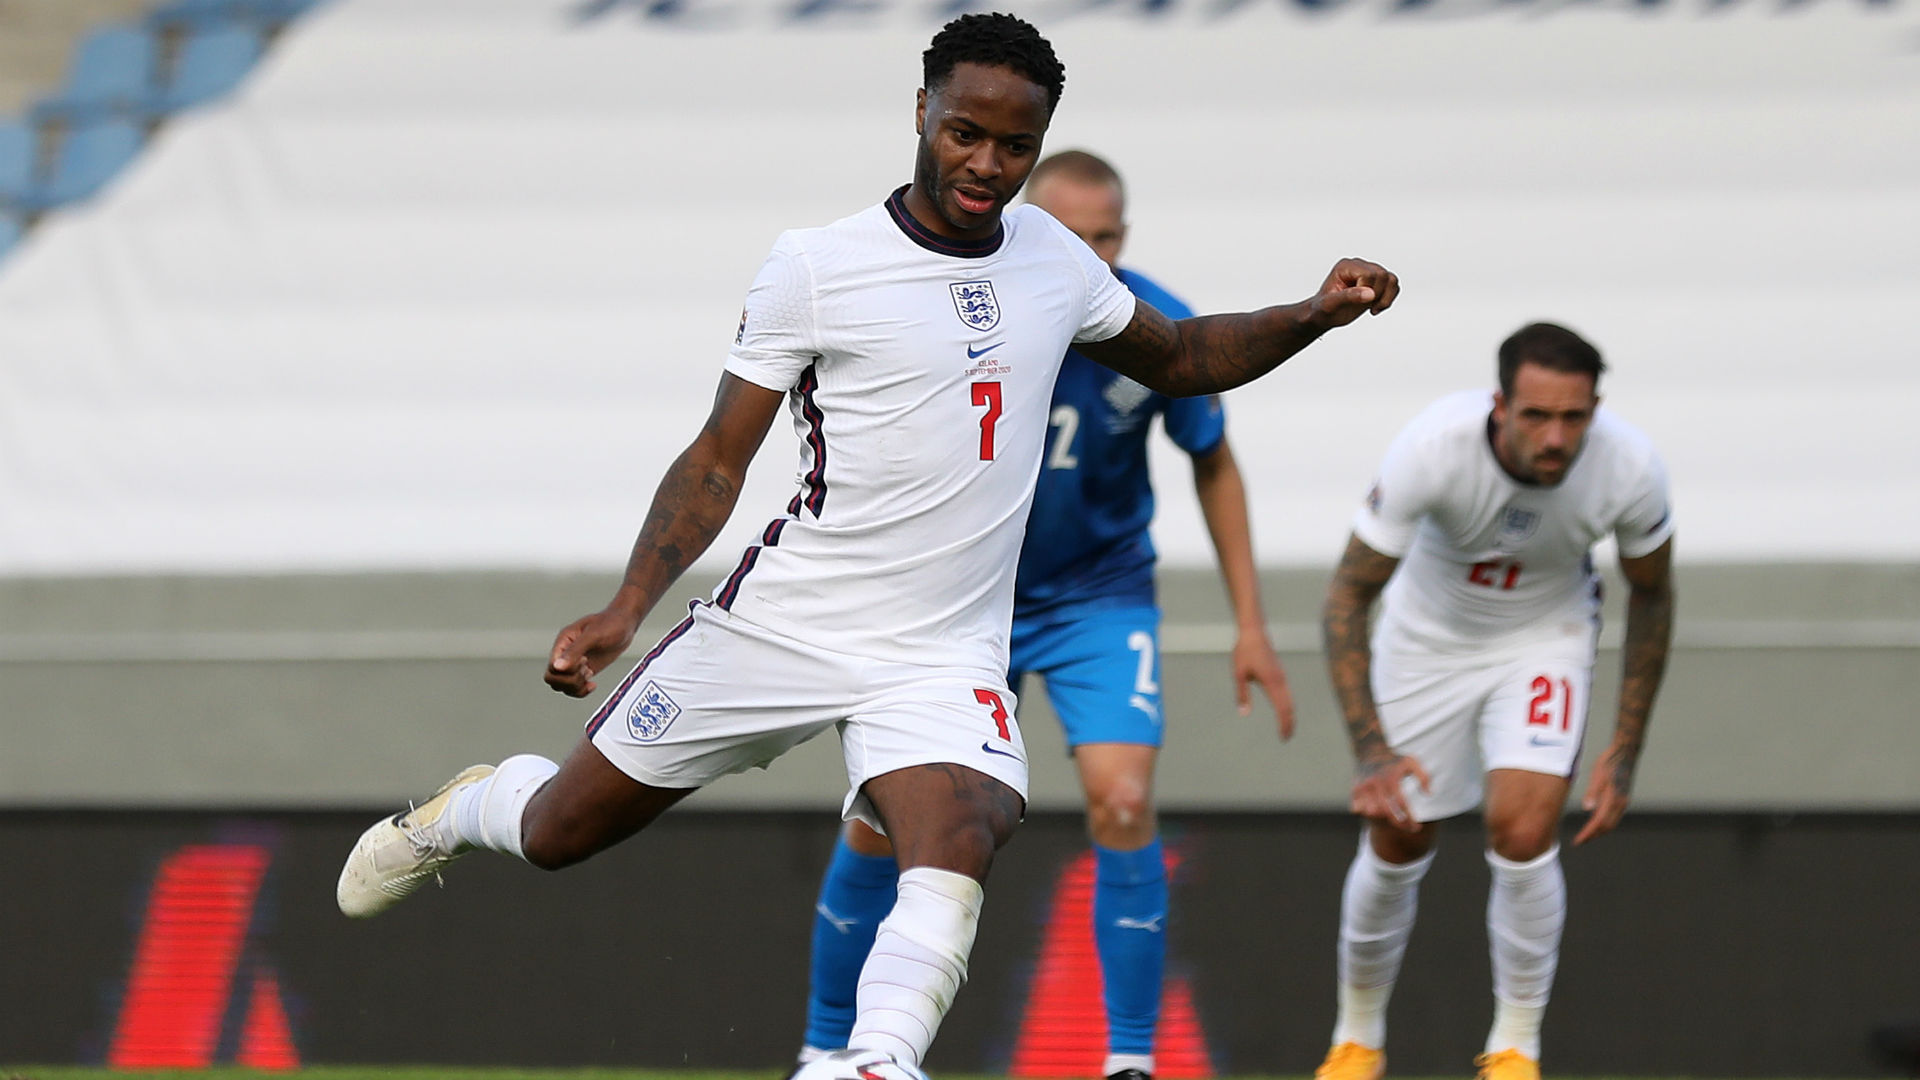 Sterling's desire and drive delights England boss Southgate